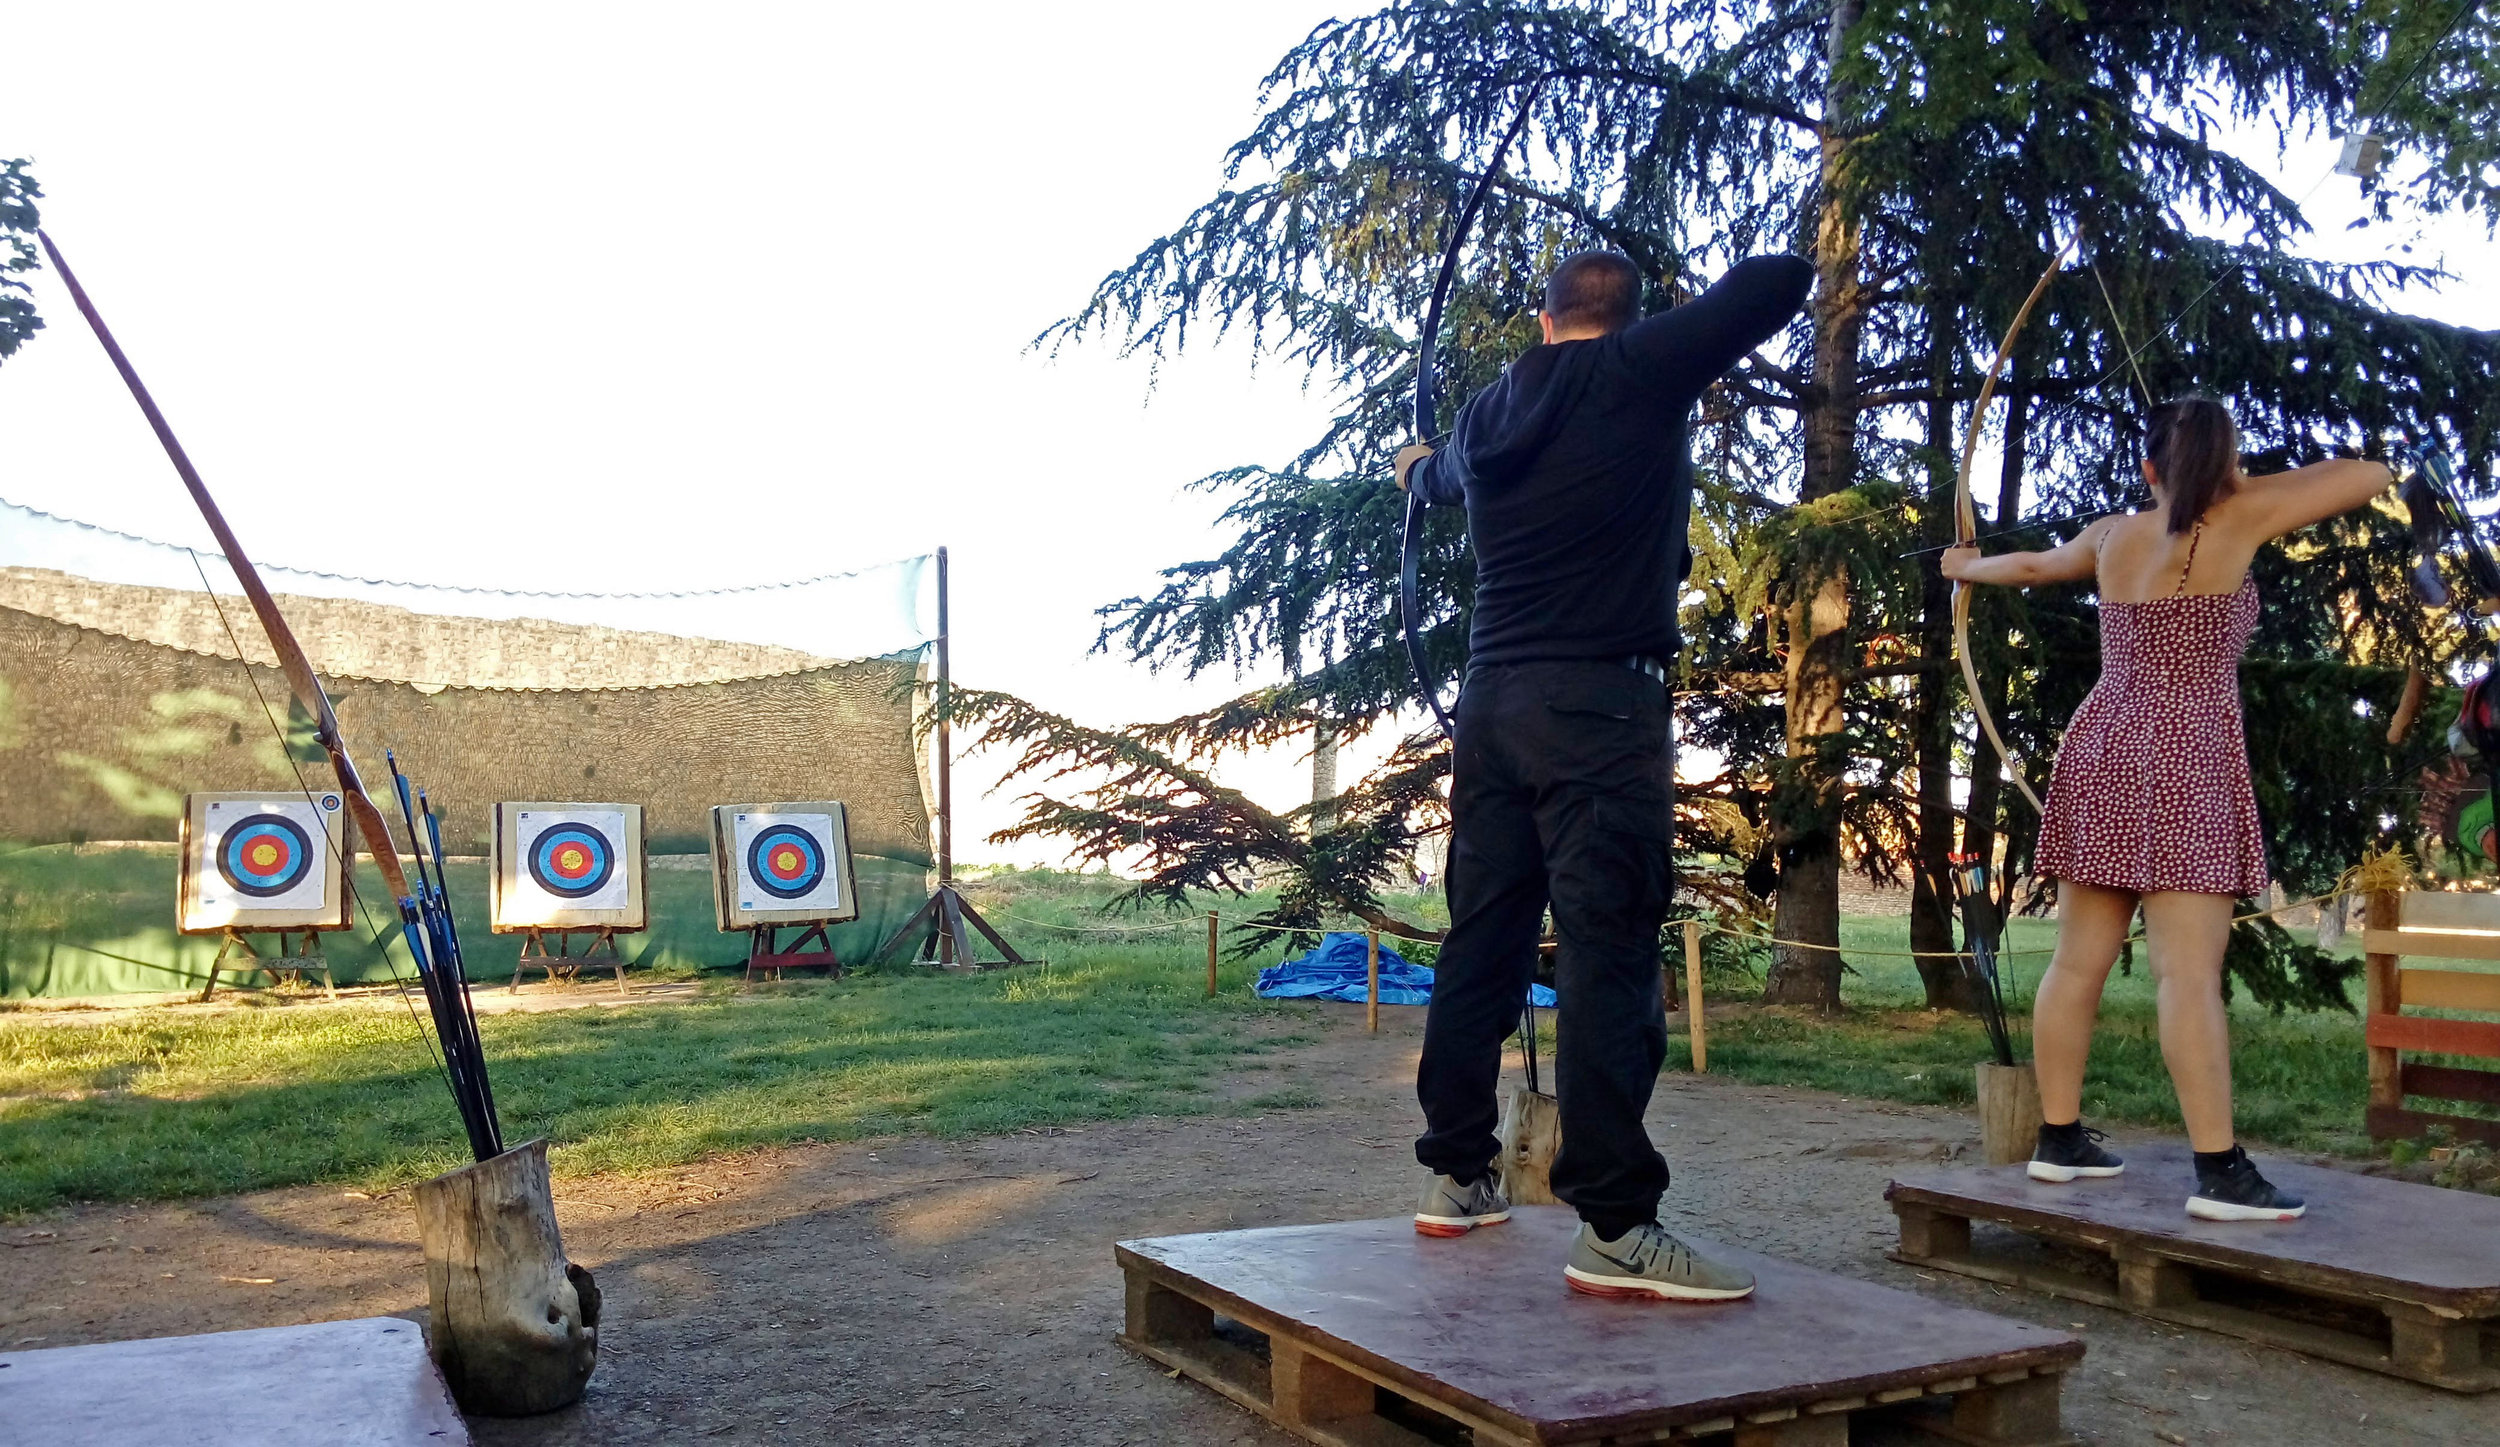 Archery Lessons with 'Belgrade Archery' from 11am to 11pm, Kalemegdan